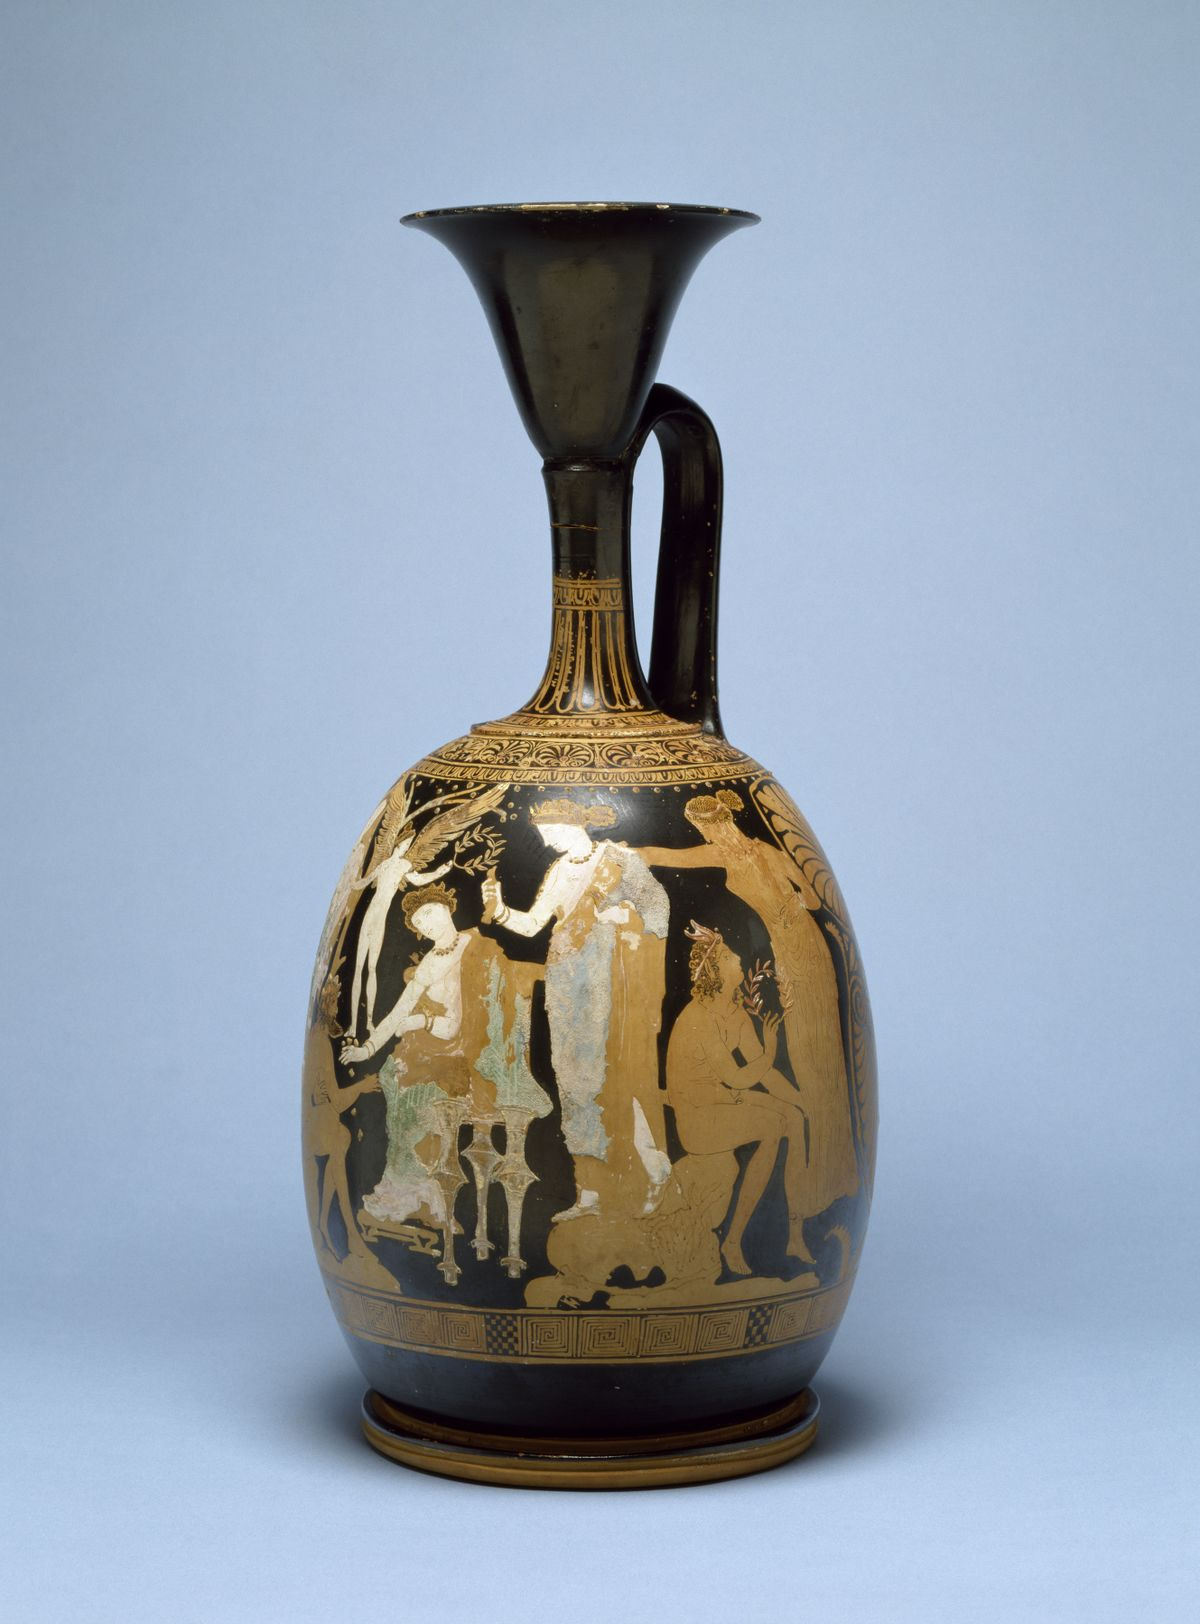 Lekythos wikipedia reviewsmspy